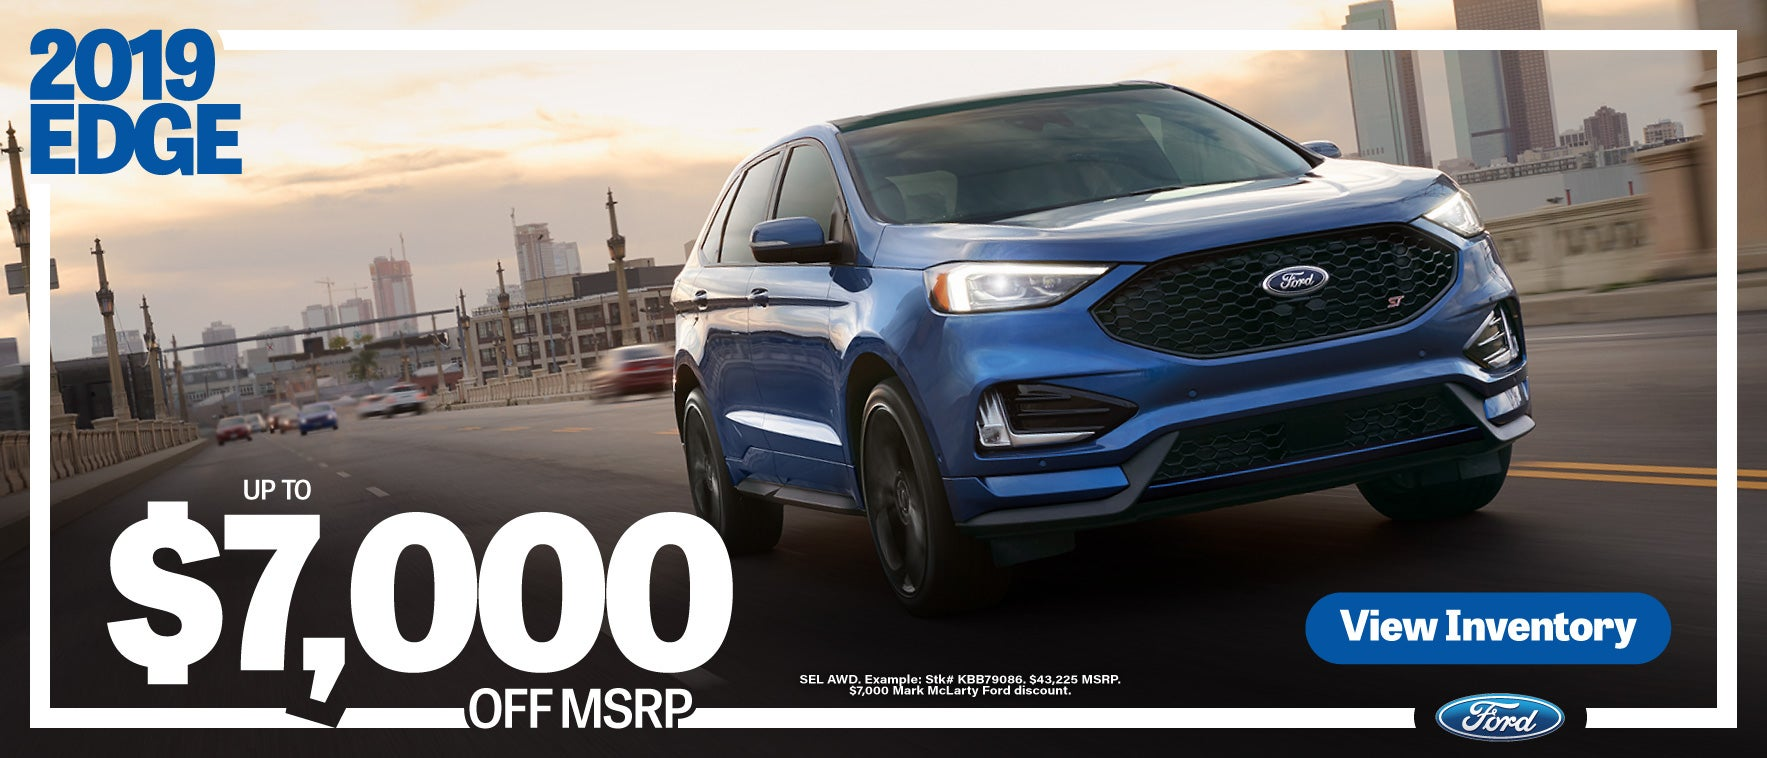 Landers Mclarty Ford >> Ford Dealer In North Little Rock Ar Used Cars North Little Rock